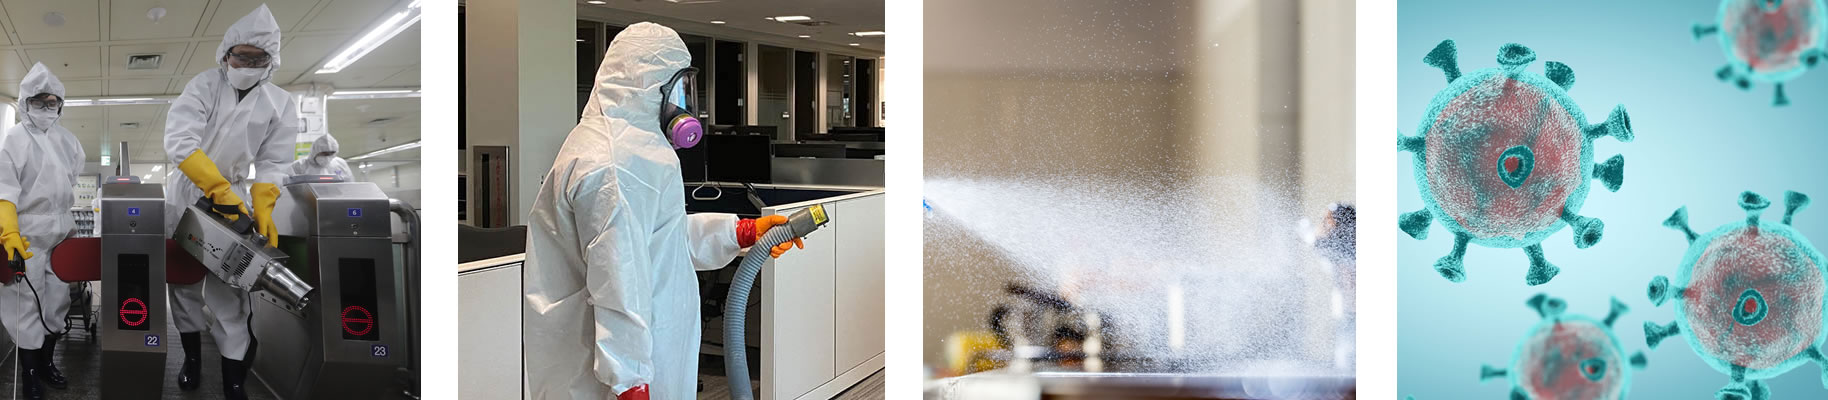 work services steam care disinfecting sanitizing